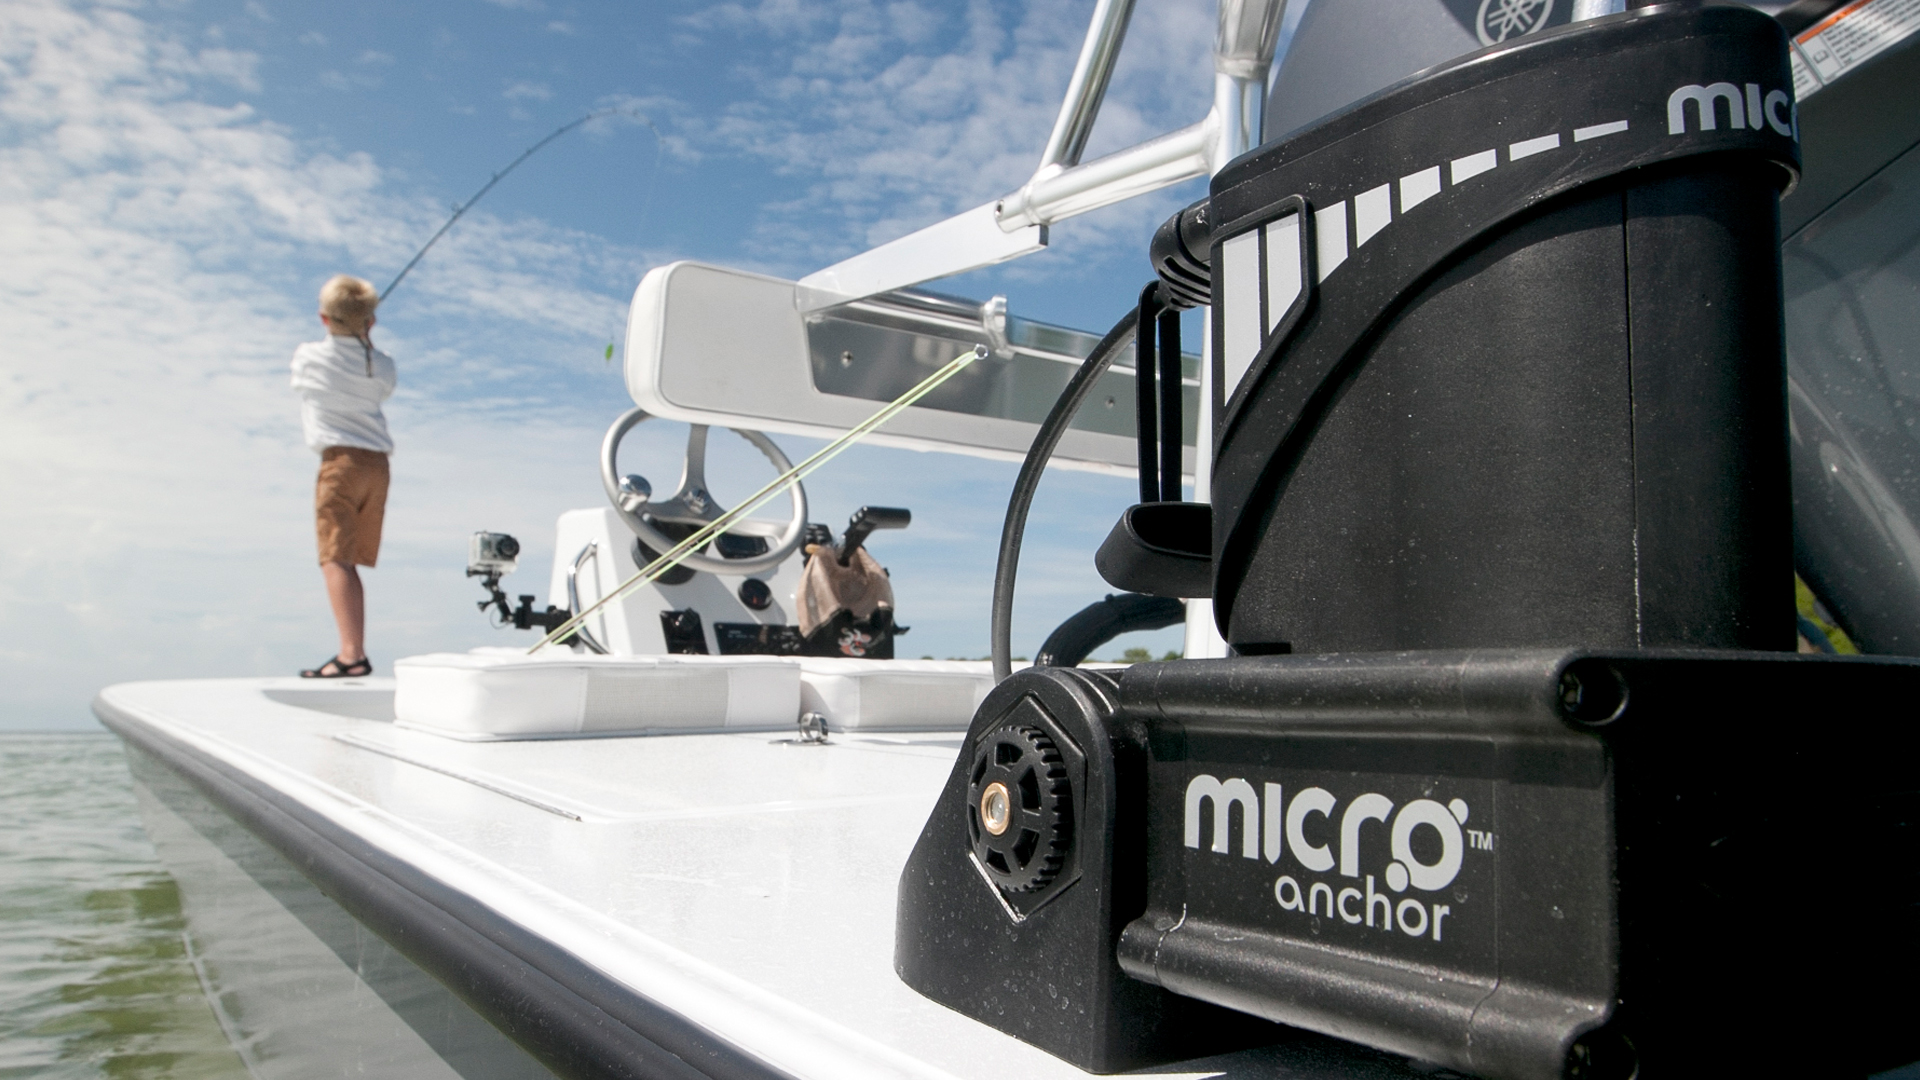 Power-Pole Micro Anchor - Big Power In A Small Package